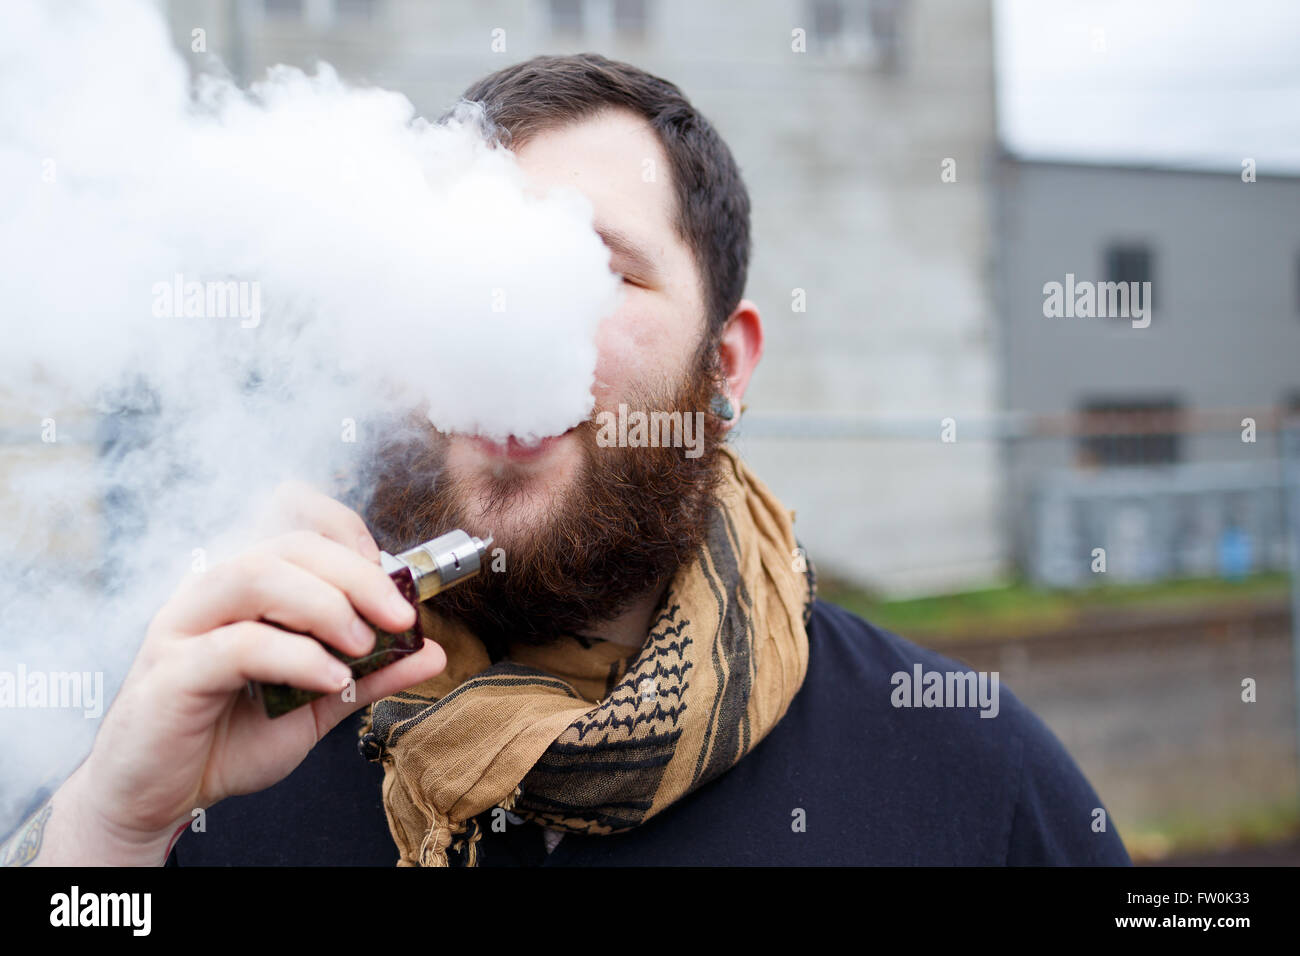 Urban lifestyle portrait of a man vaping in an urban environment with a custom vape mod device. - Stock Image